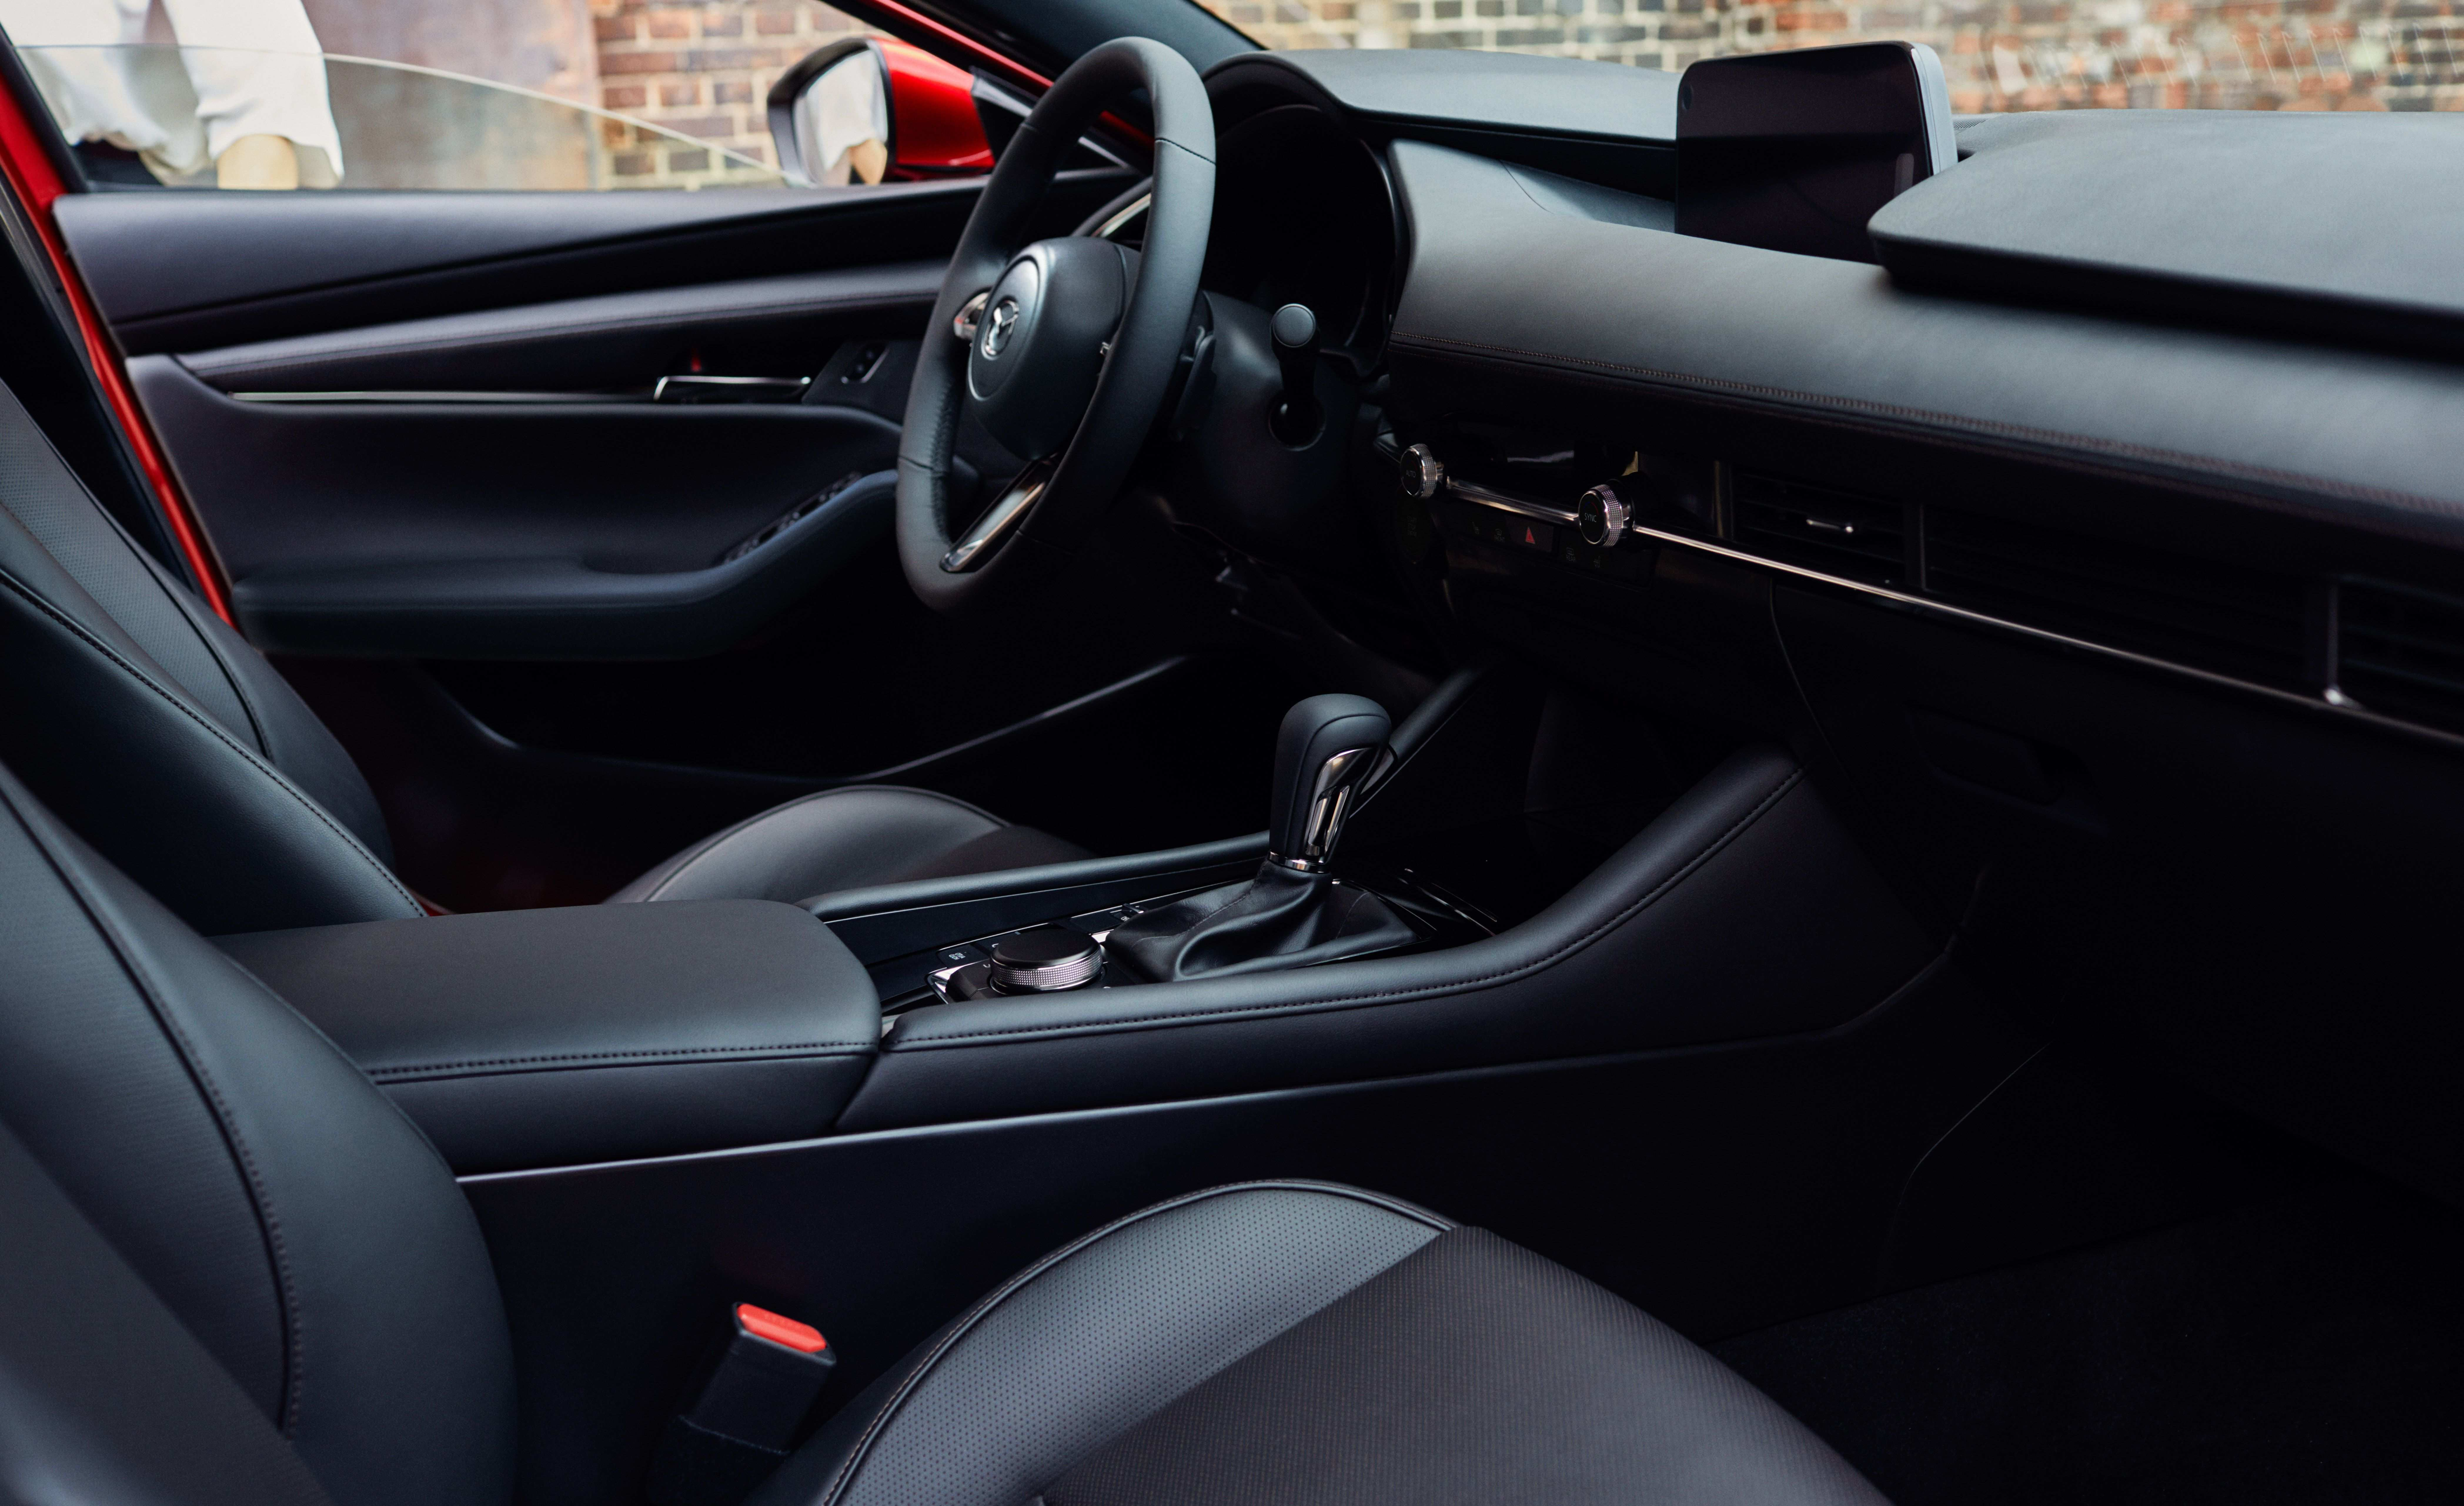 14 All New Mazda 6 2019 Interior Model